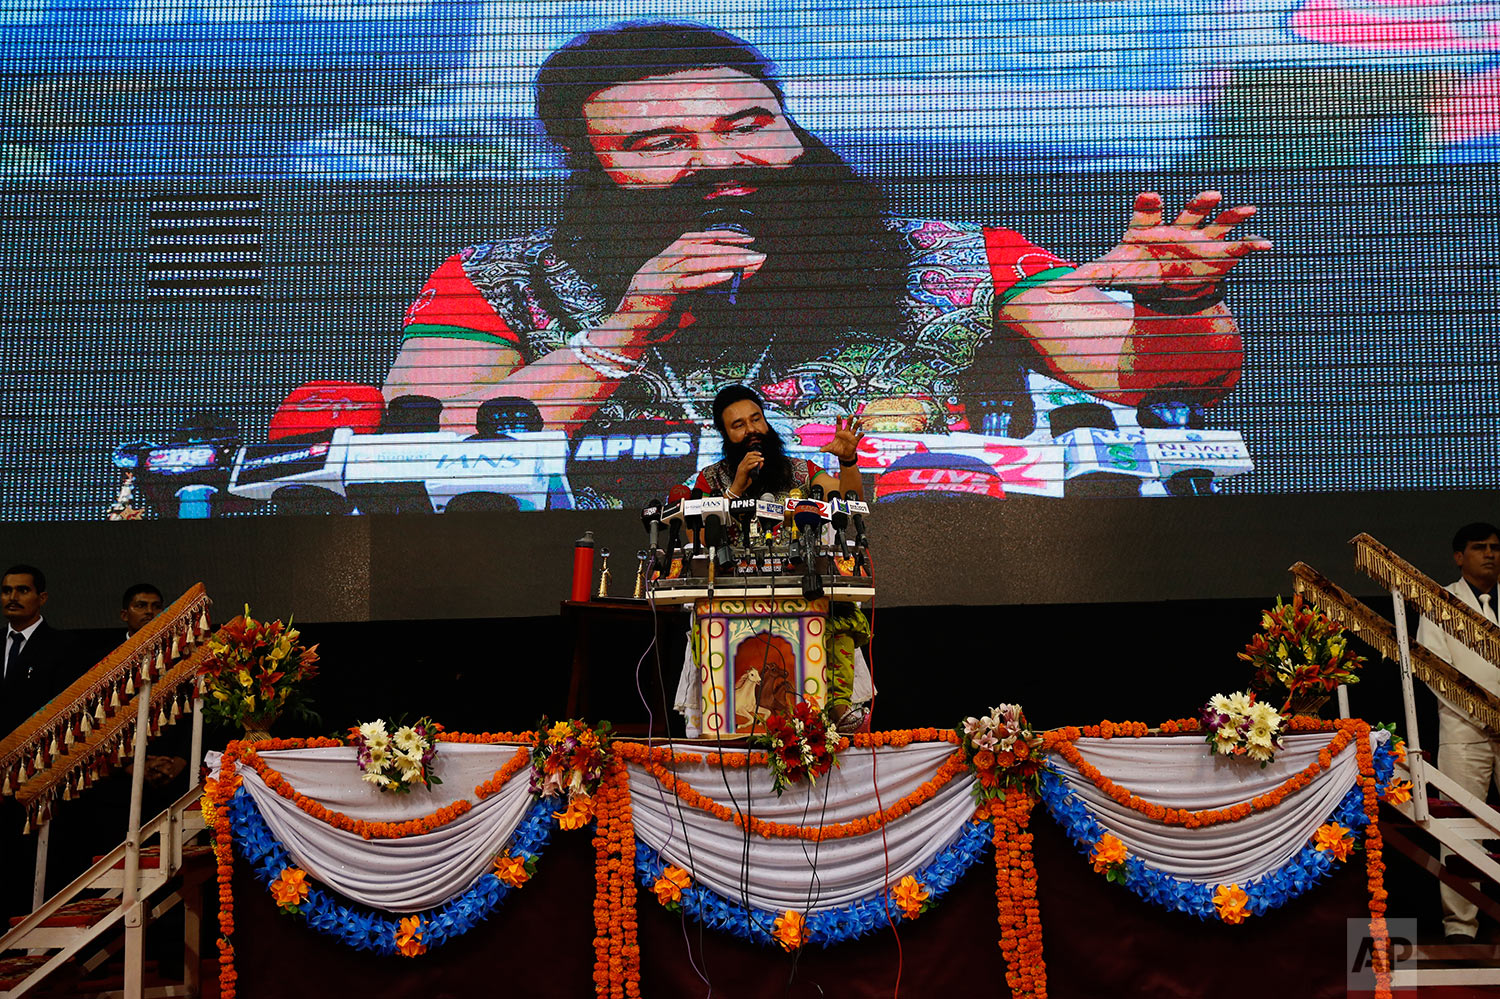 In this Oct. 5, 2016 photo, an Indian guru, who calls himself Dr. Saint Gurmeet Singh Ram Rahim Insan, addresses a press conference ahead of releasing his new movie, MSG The Warrior, Lion Heart in New Delhi, India. (AP Photo/Tsering Topgyal)